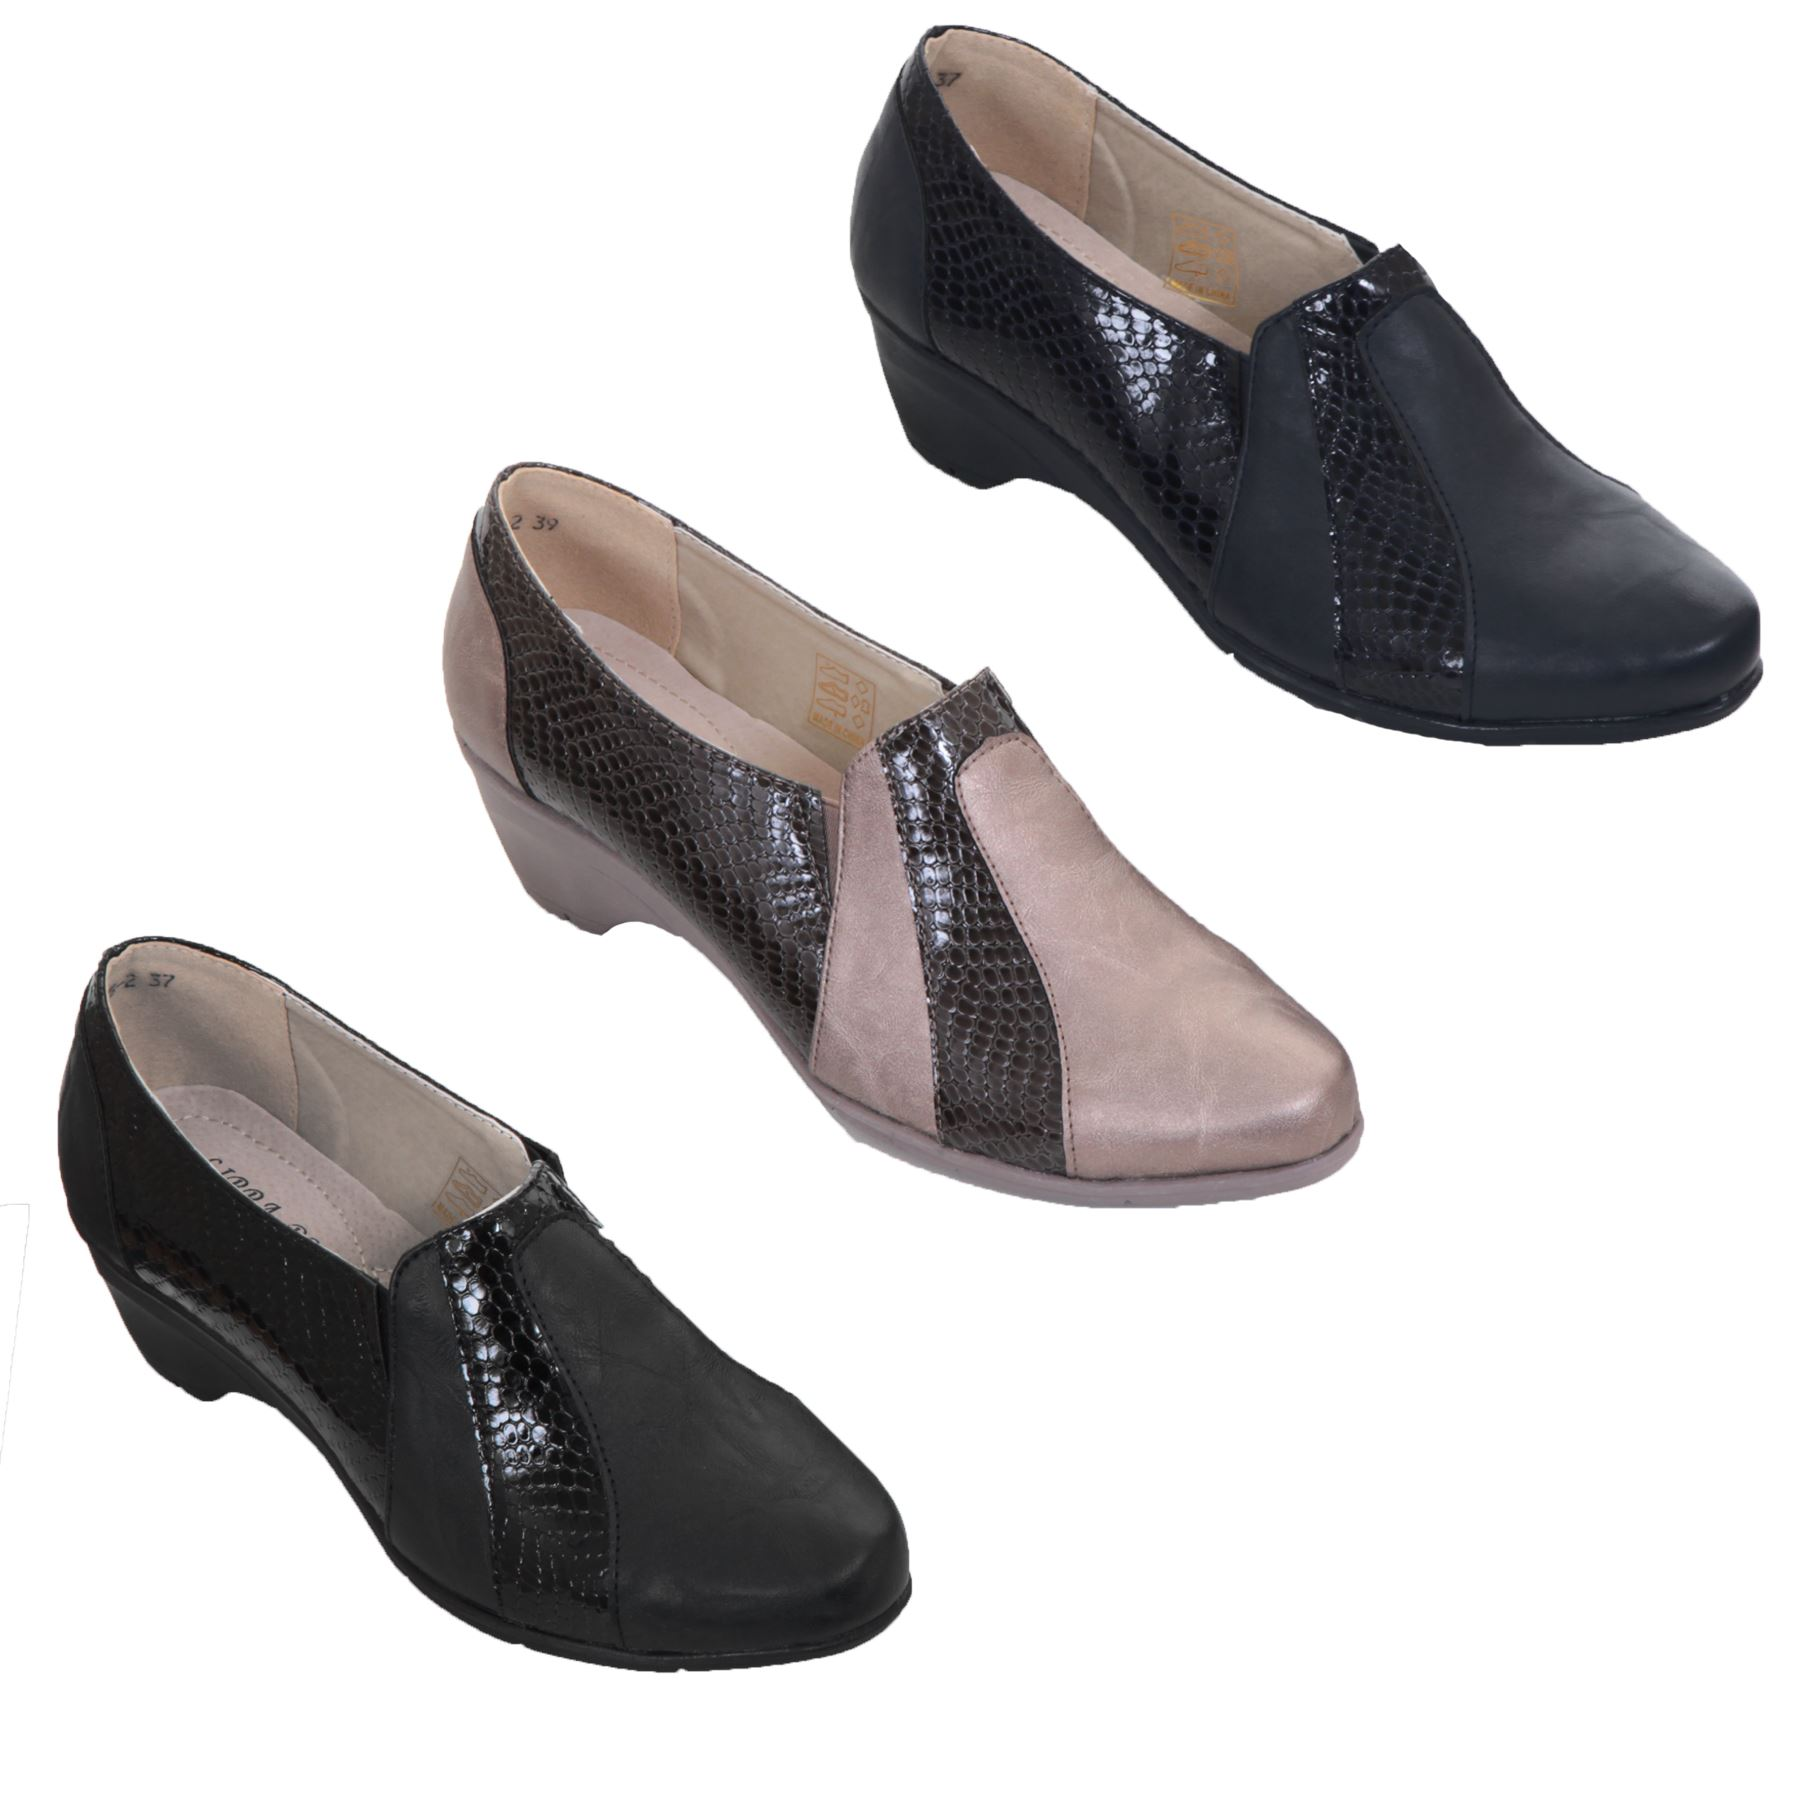 6c006f8ef3 Details about Ladies Slip On Patent Snake Faux Leather Padded Low Wedge  Loafers Shoes